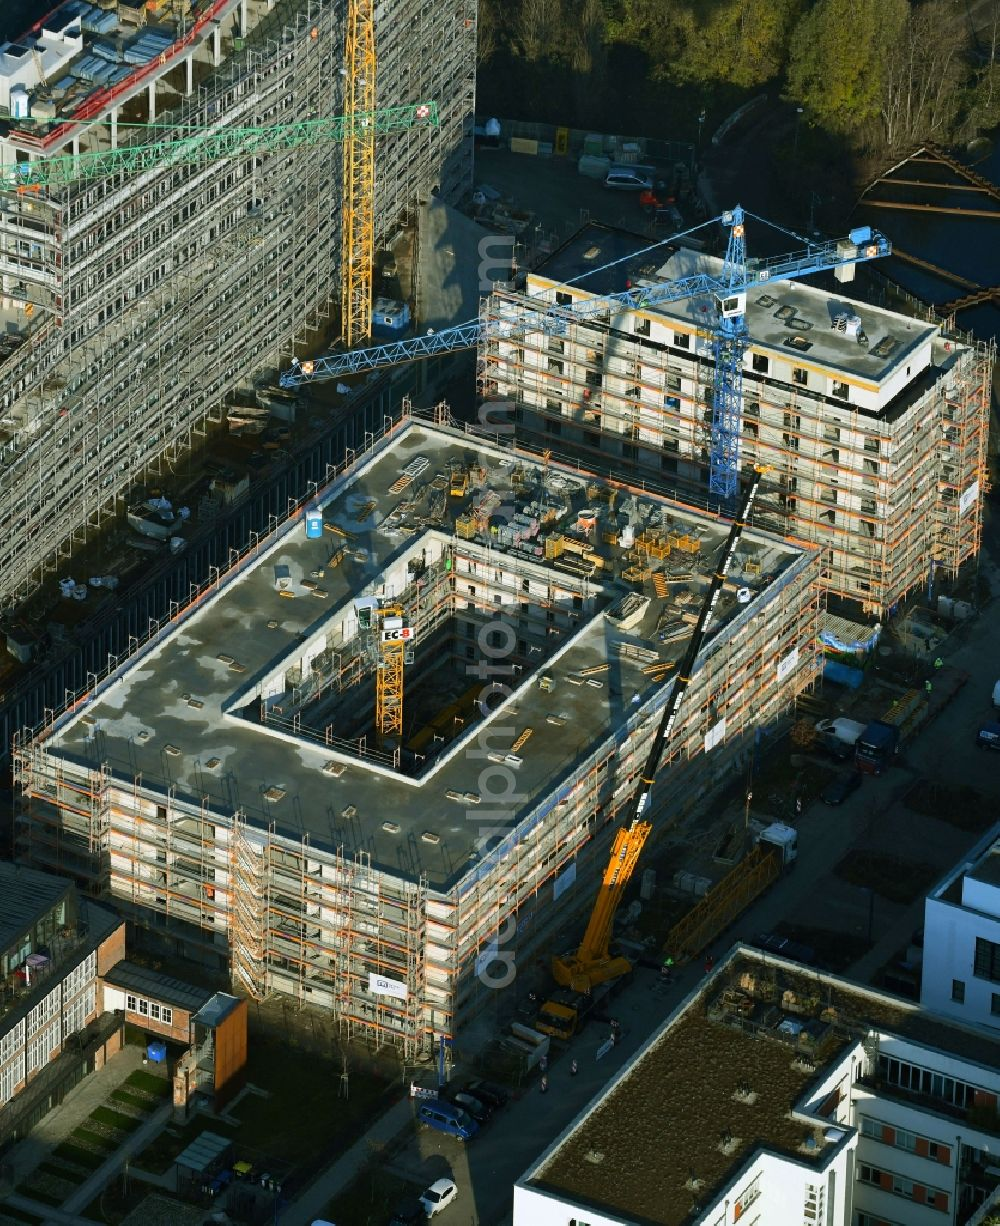 Aerial photograph Berlin - Construction site for the multi-family residential building on Glasblaeserallee in the district Friedrichshain in Berlin, Germany